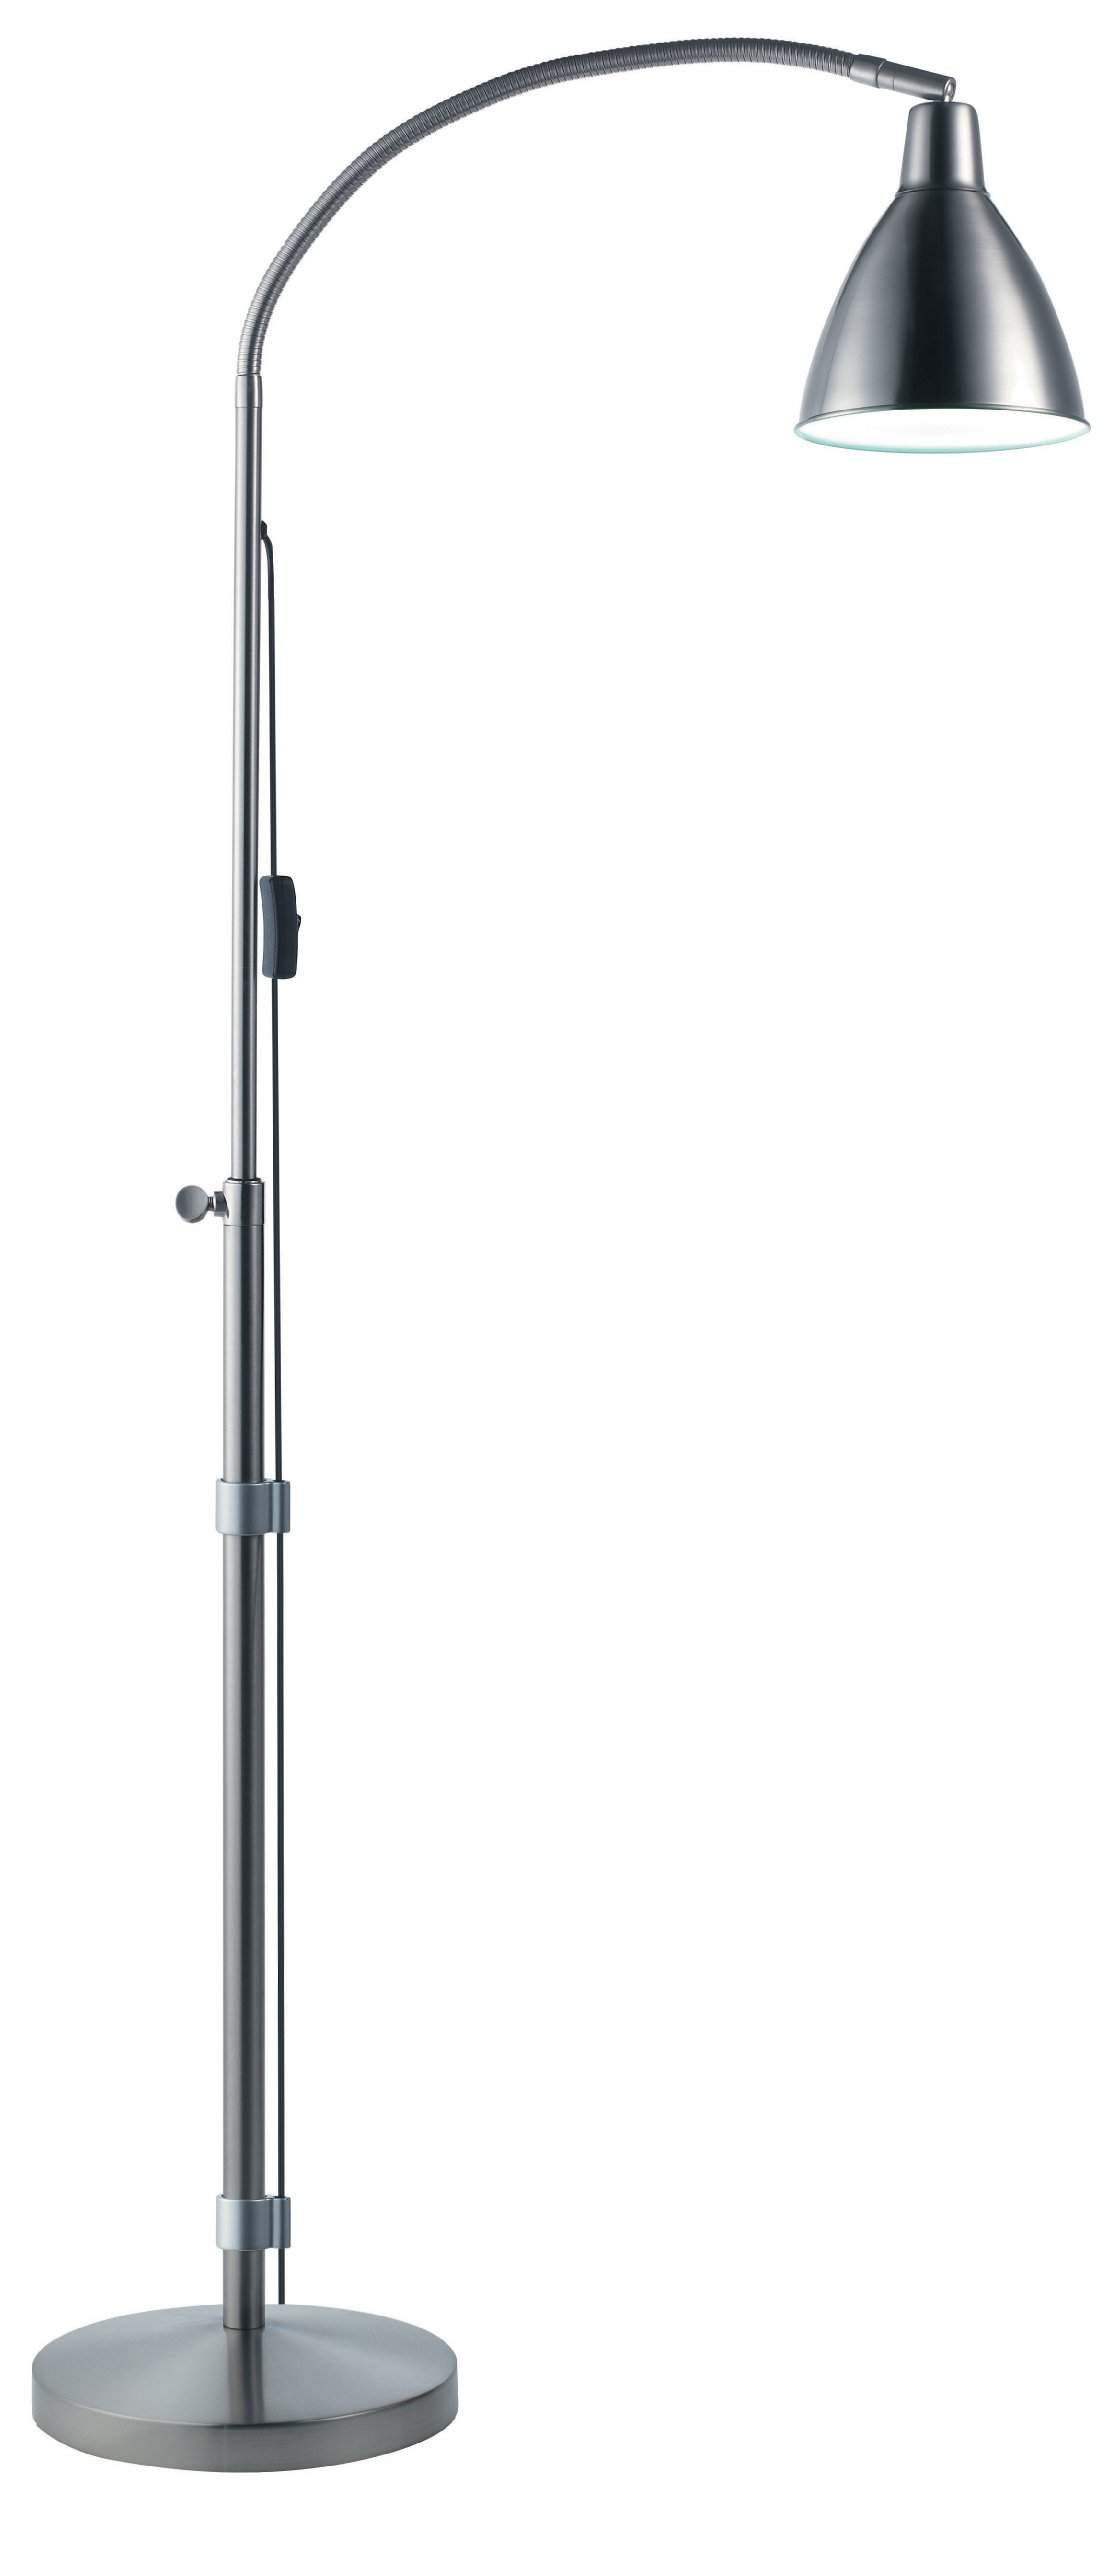 Daylight flexi vision floor lamp silver for Daylight flexi vision floor lamp silver u31067